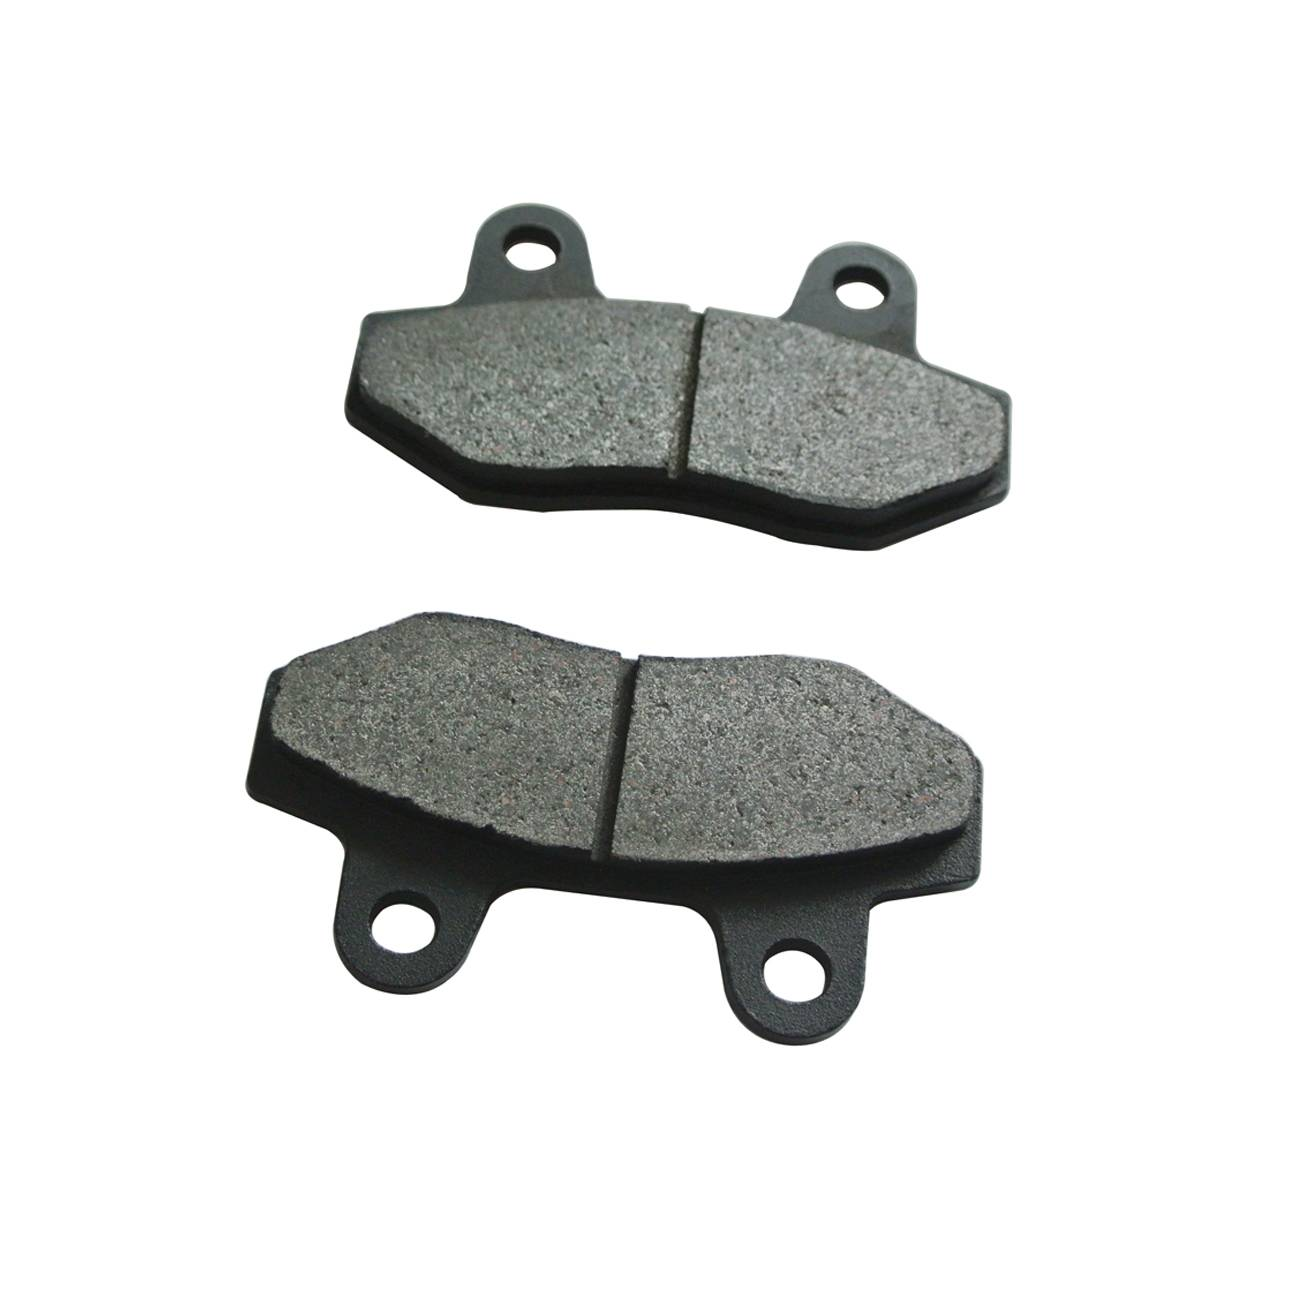 Brake Pads Shoes Fit Chinese Pit Dirt Bike 125cc 140cc 150cc 160cc